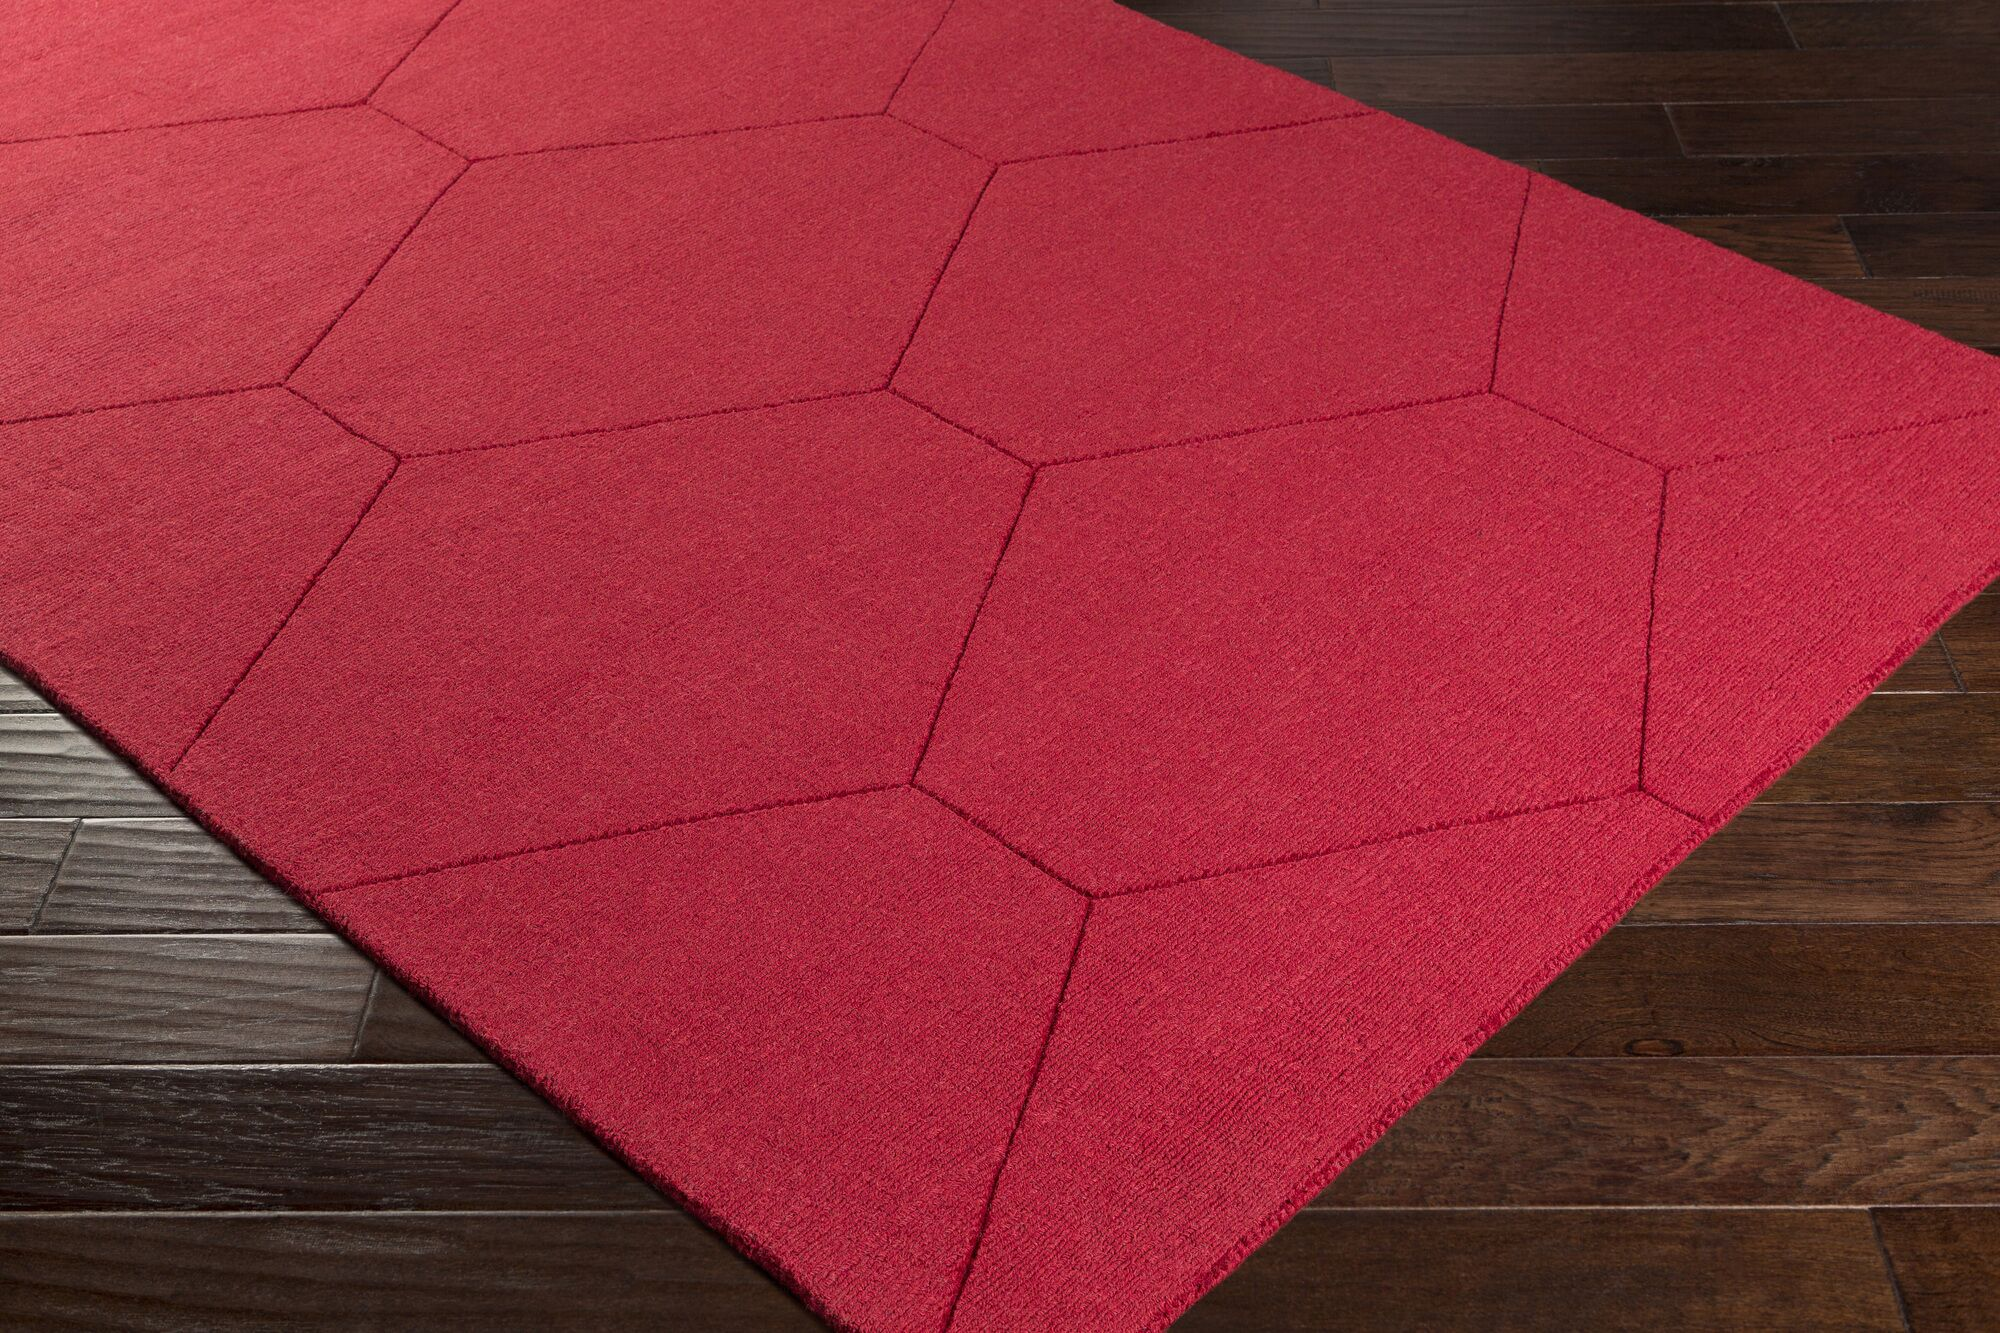 Pulcova Hand Woven Wool Dark Red Area Rug Rug Size: Rectangle 8' x 10'